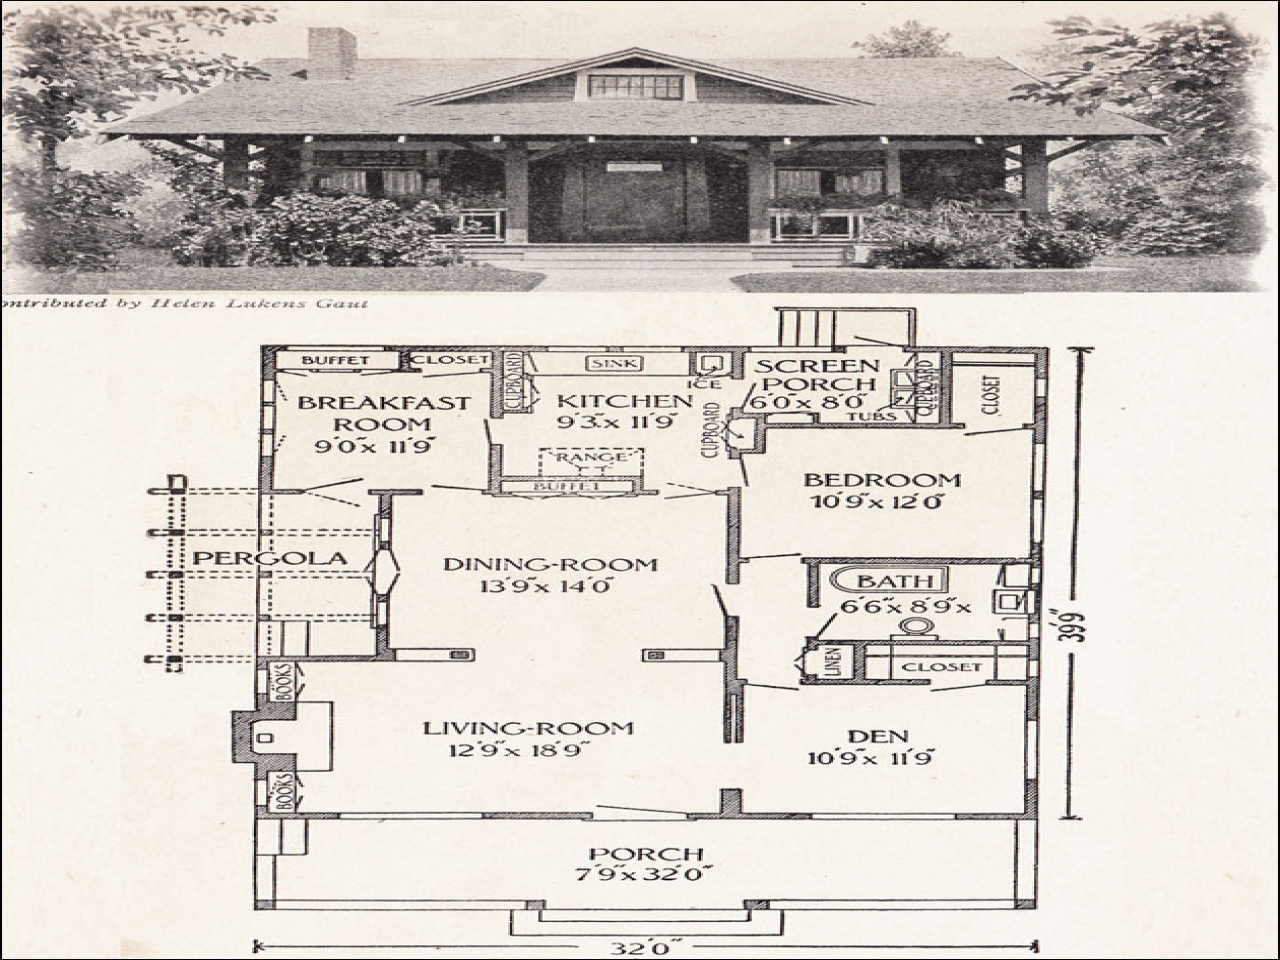 Homes for under 1200 sq ft floor plans bungalow house Old ranch house plans